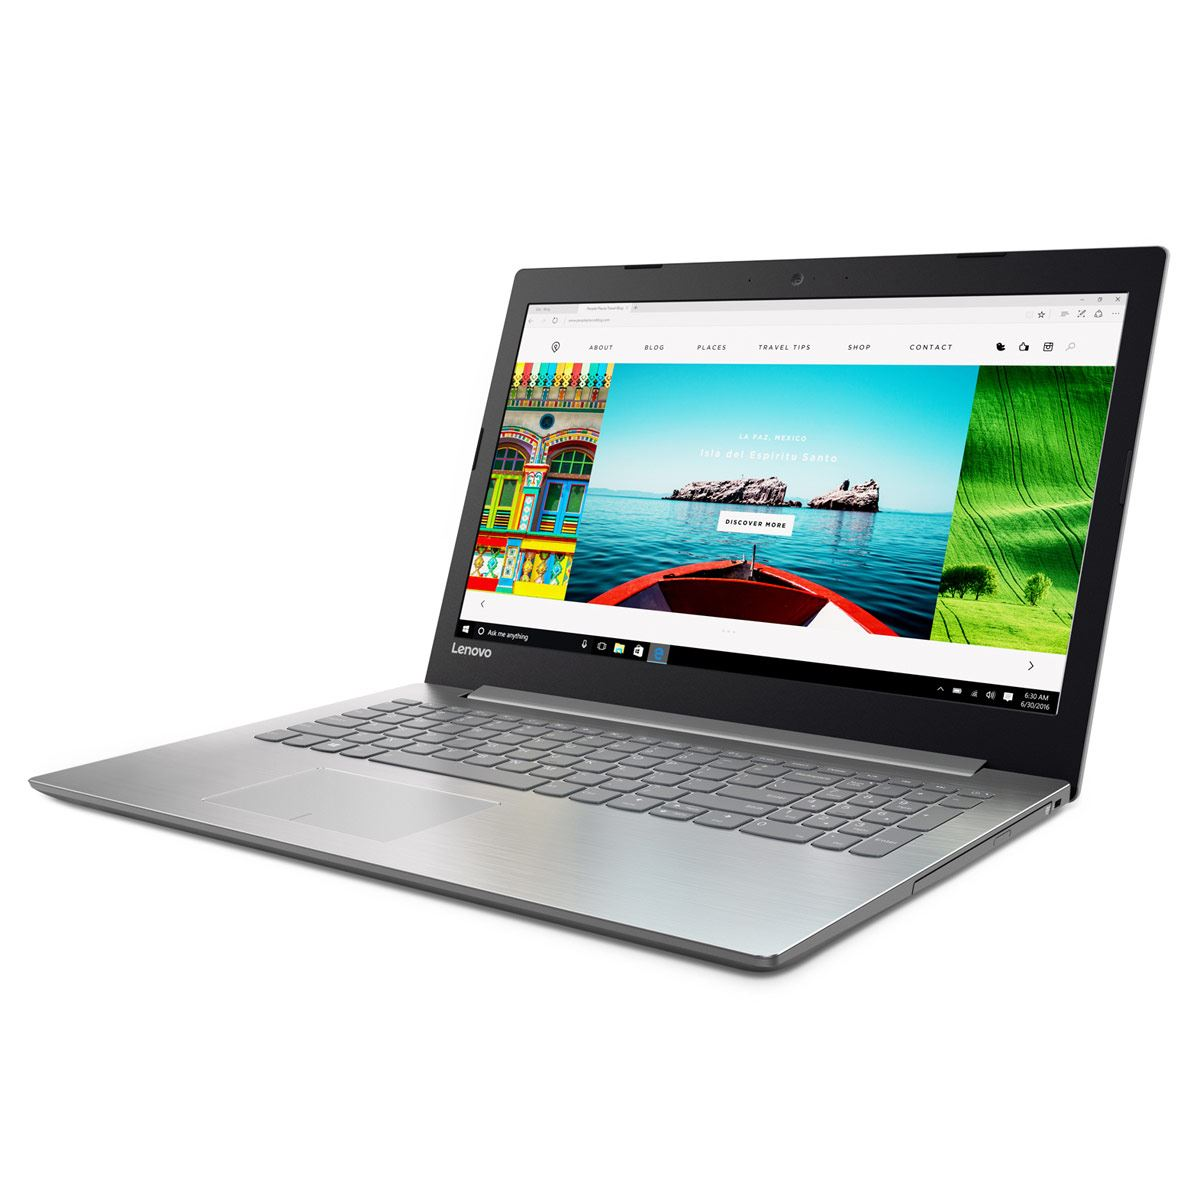 Laptop IP 320-15ABR A12 Lenovo